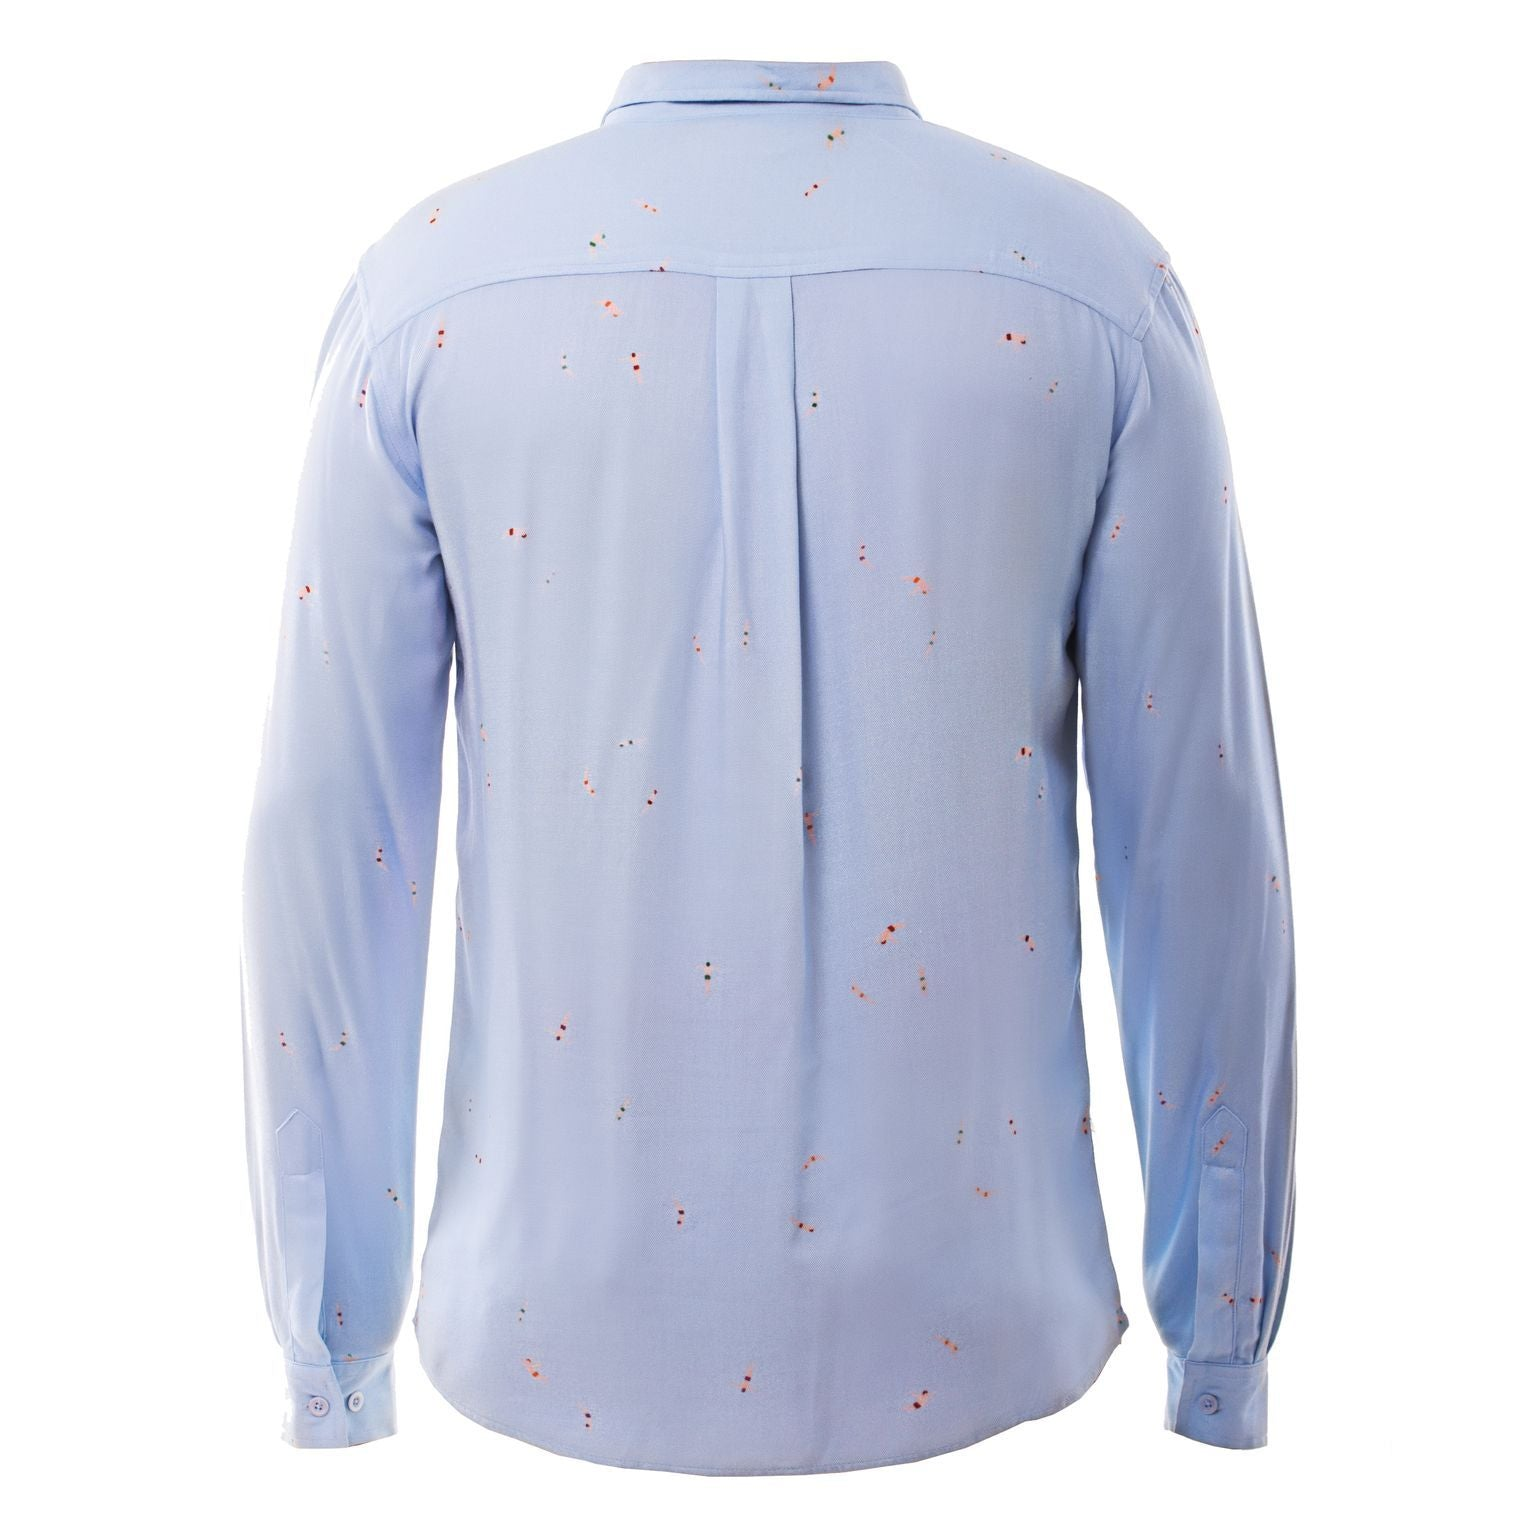 Viscose Printed Diver Shirt - The Clothing LoungeWIINO